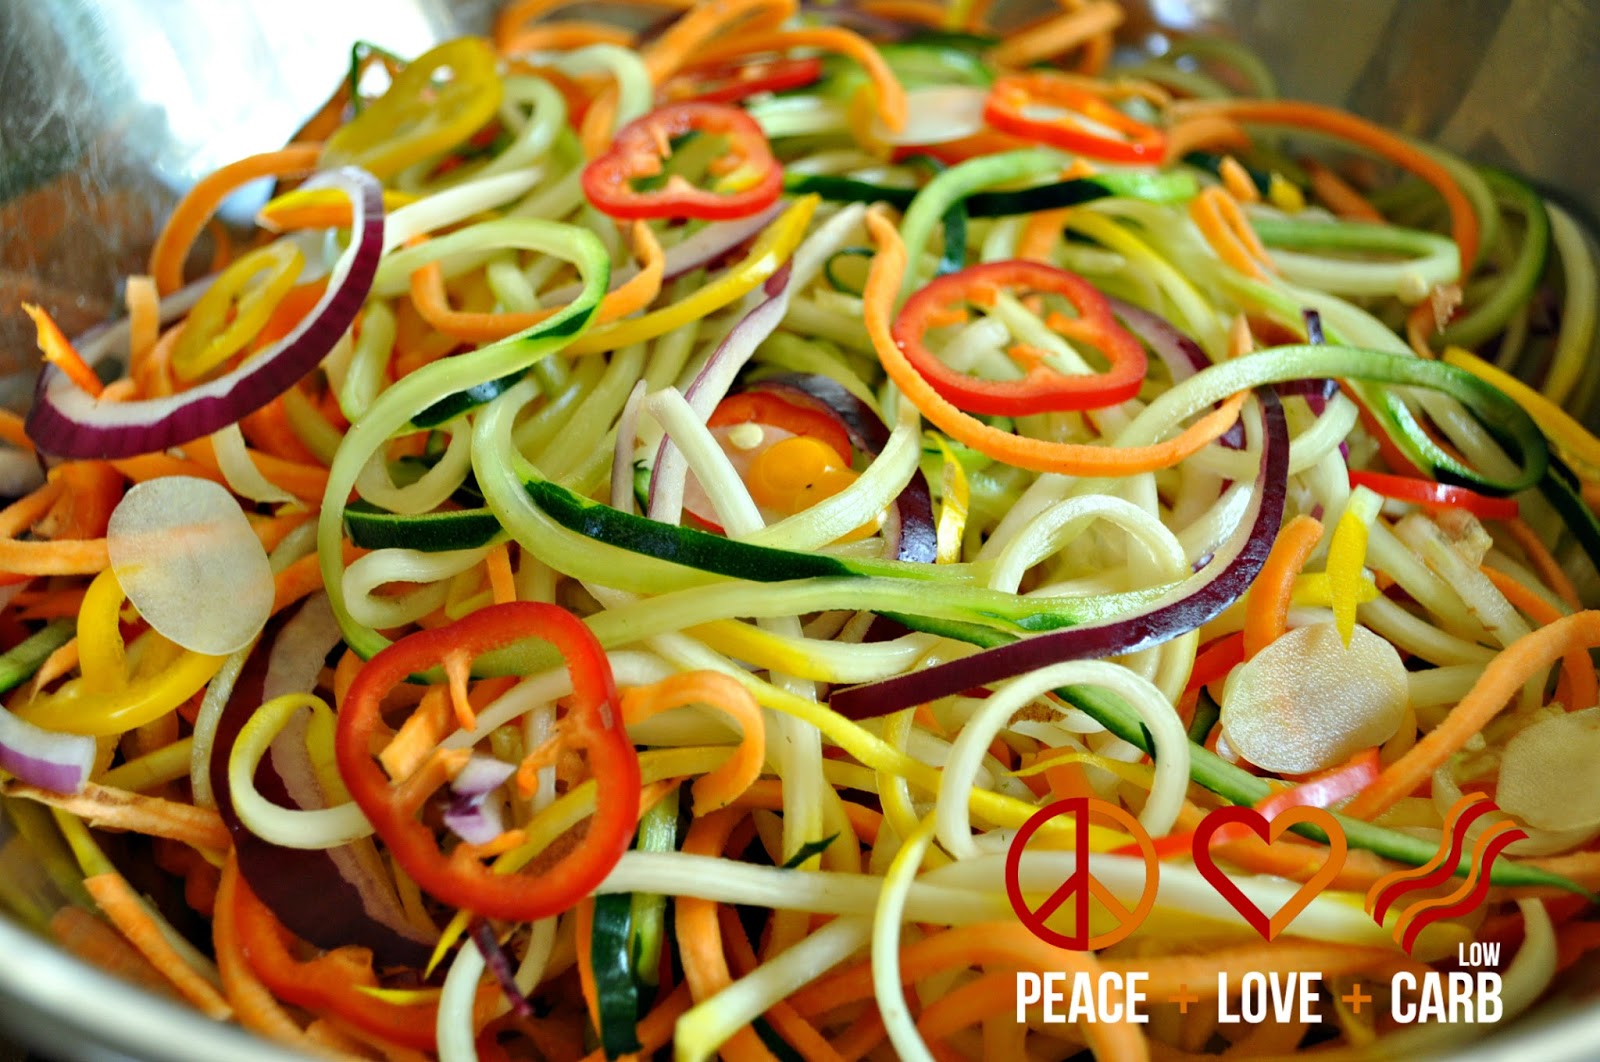 veggie noodles Directions place veggie noodles in large bowl sprinkle evenly with salt let rest about 10 min at room temp transfer noodles gently into colander (do not rinse) squeeze lightly using paper towel pat dry add noodles, vinaigrette, and mint to large bowl toss to combine.